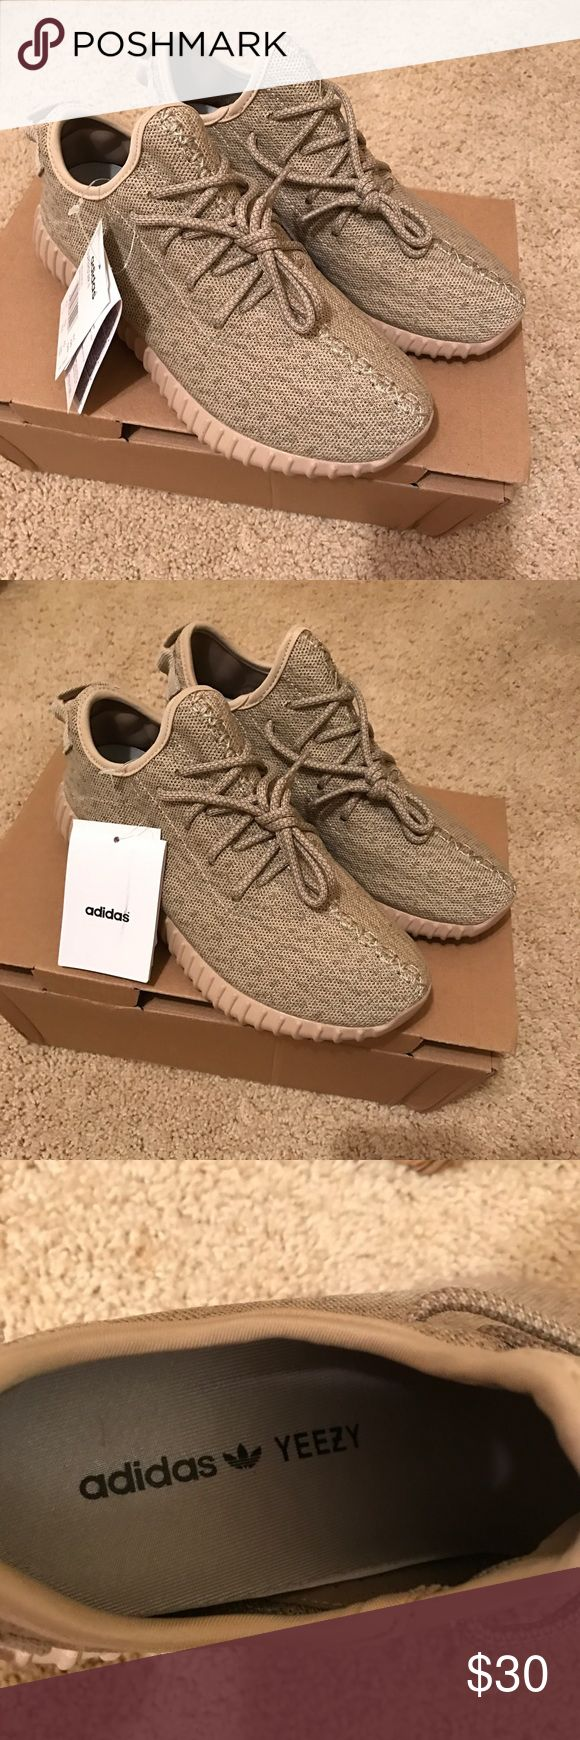 Yeezy Boost 360 Oxford Tan Fake Yeezy Adidas - I bought these on Amazon, but they are too big. I normally wear a size 7 and these are 8.5. Adidas Shoes Sneakers